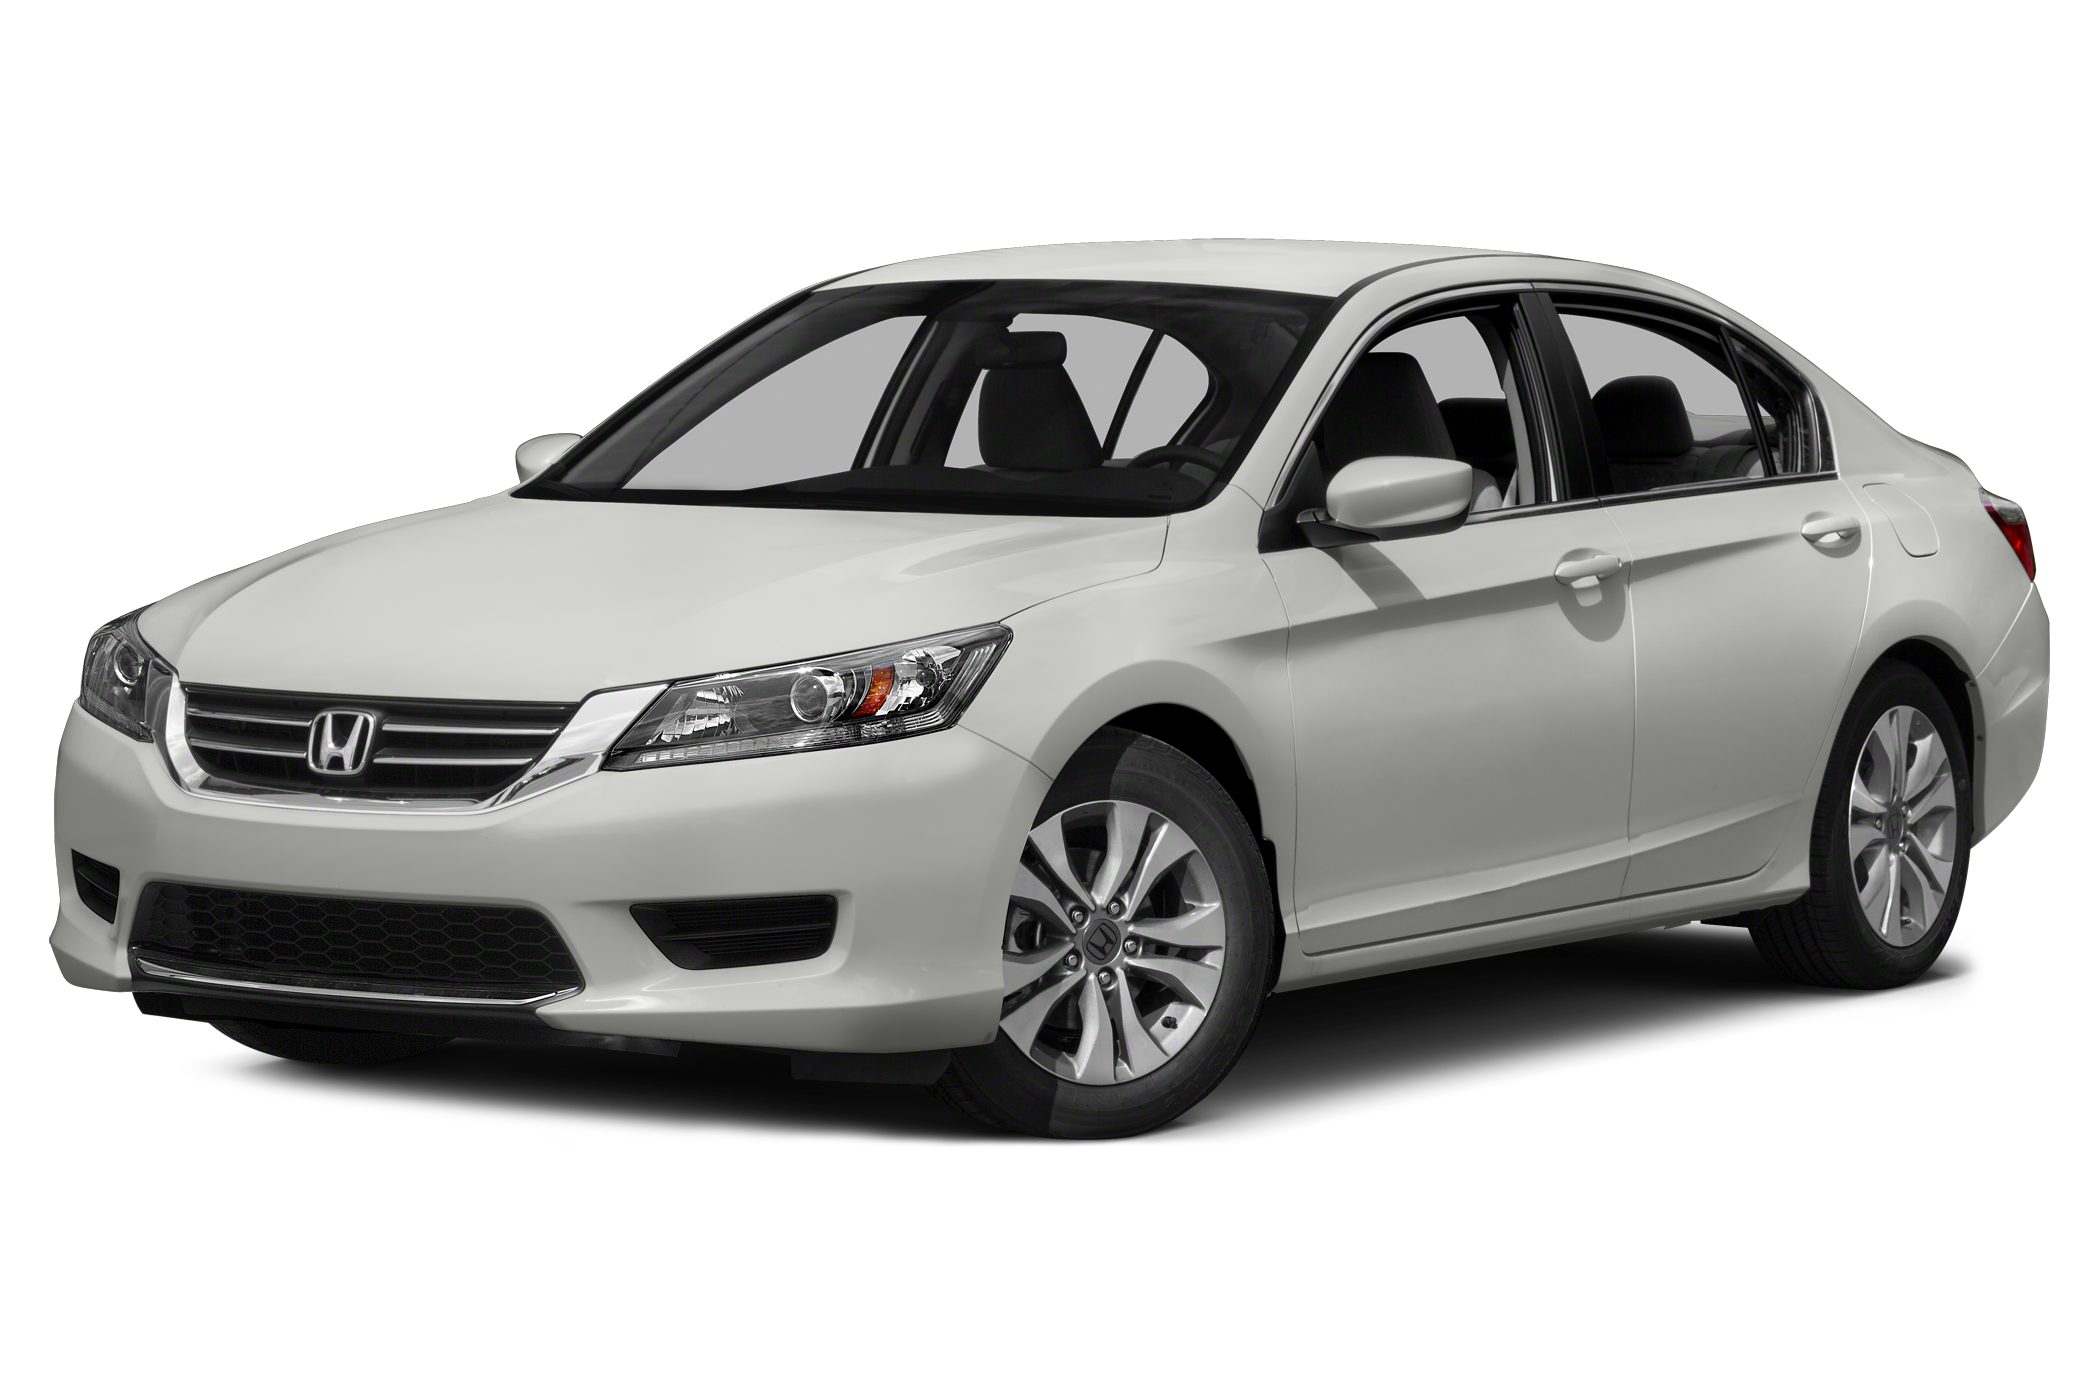 2015 honda accord coupe review. Black Bedroom Furniture Sets. Home Design Ideas